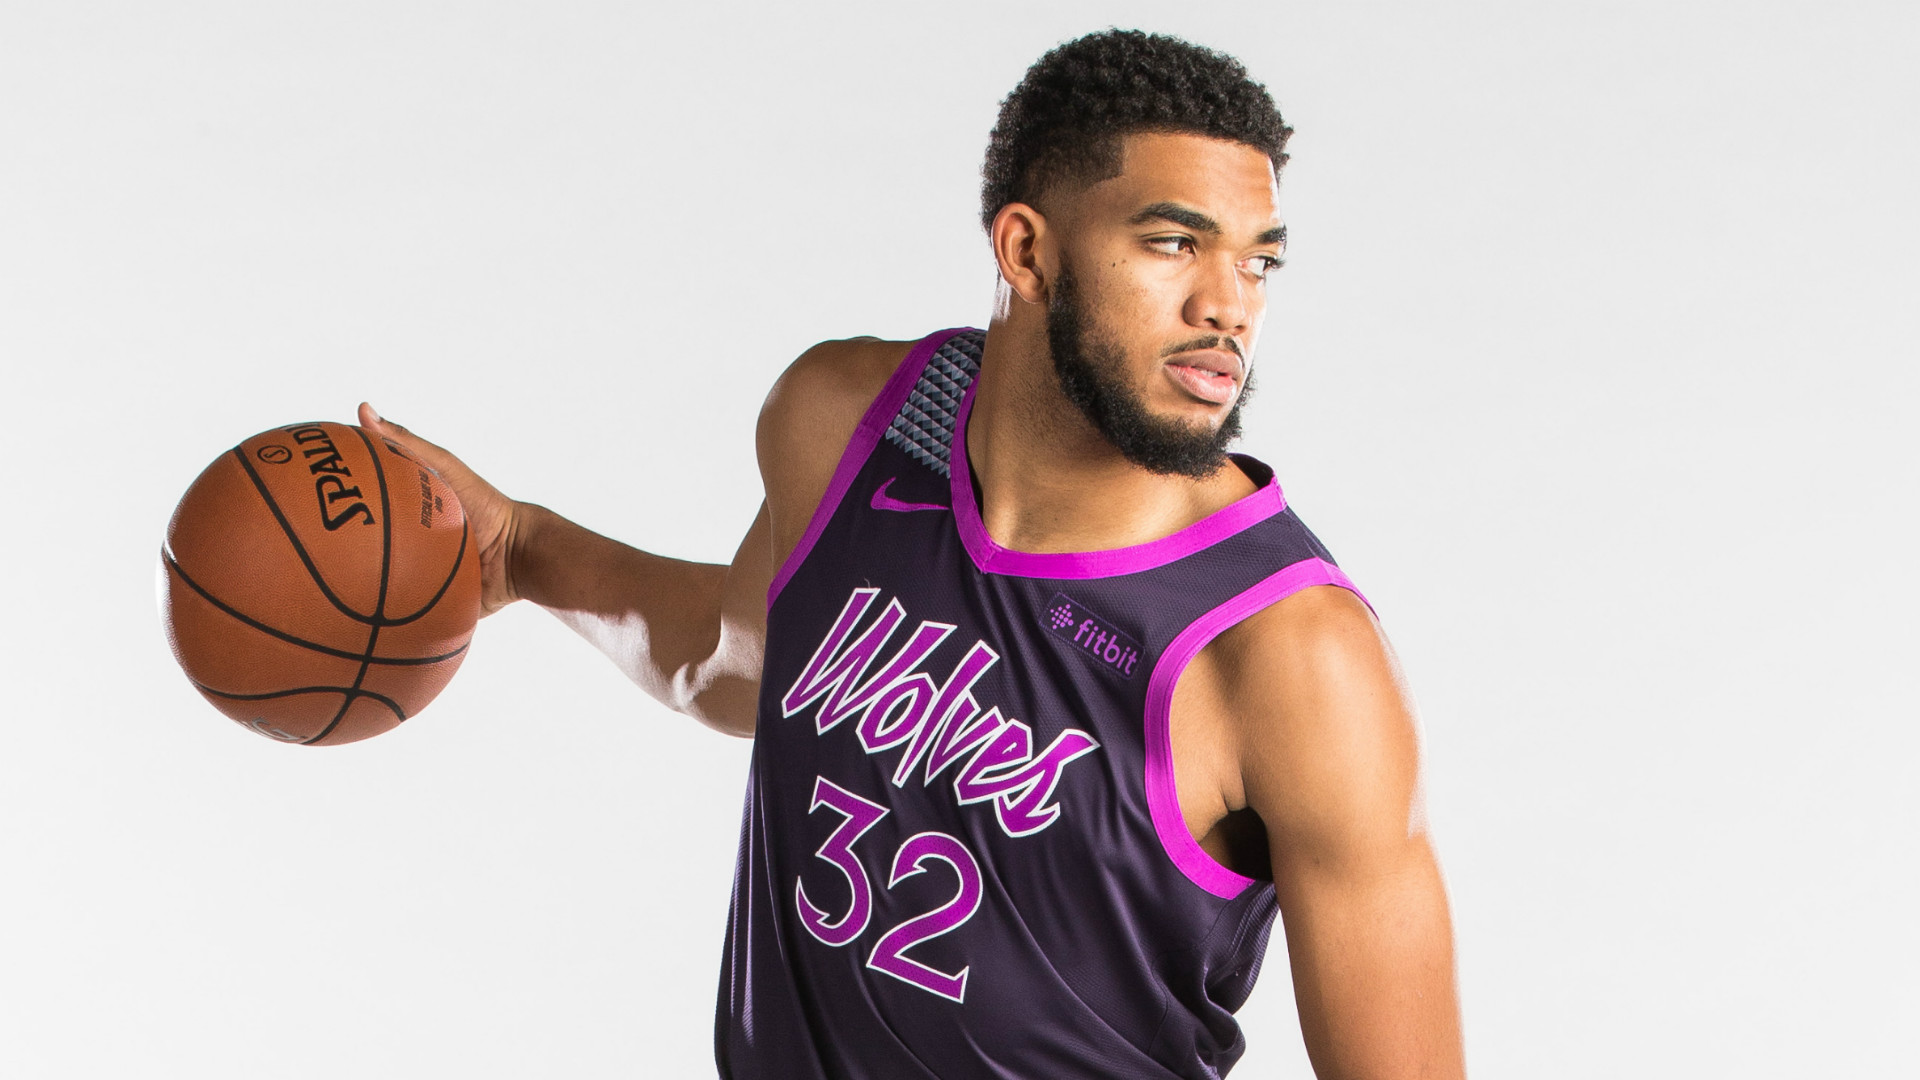 9deb66f7035 Nuggets, Hornets, Thunder, Timberwolves unveil 2018/19 City Edition uniforms  | NBA.com Australia | The official site of the NBA